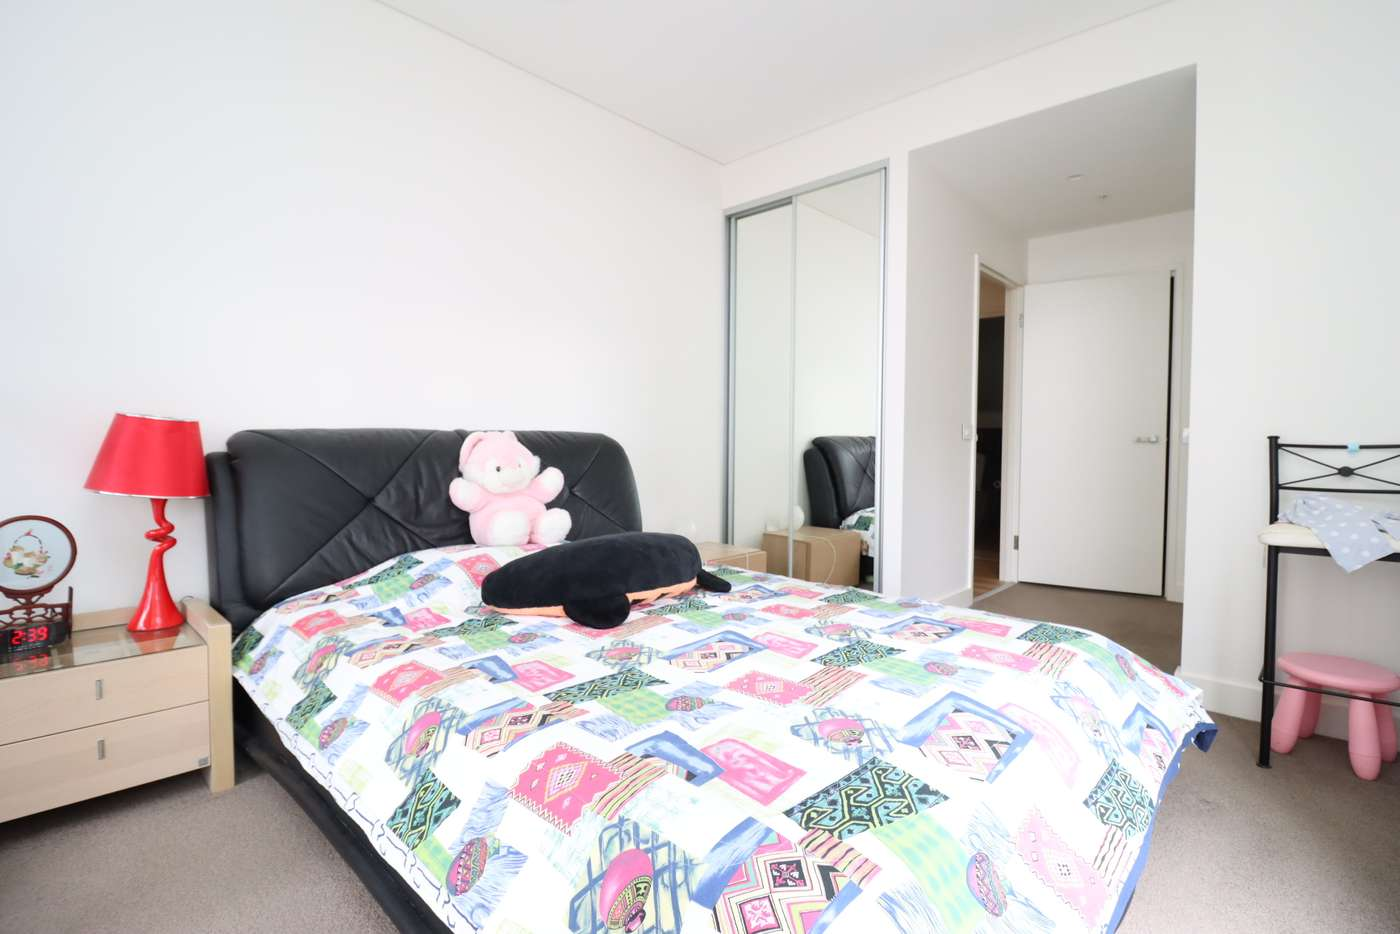 Seventh view of Homely apartment listing, 813/13 Verona Dr, Wentworth Point NSW 2127